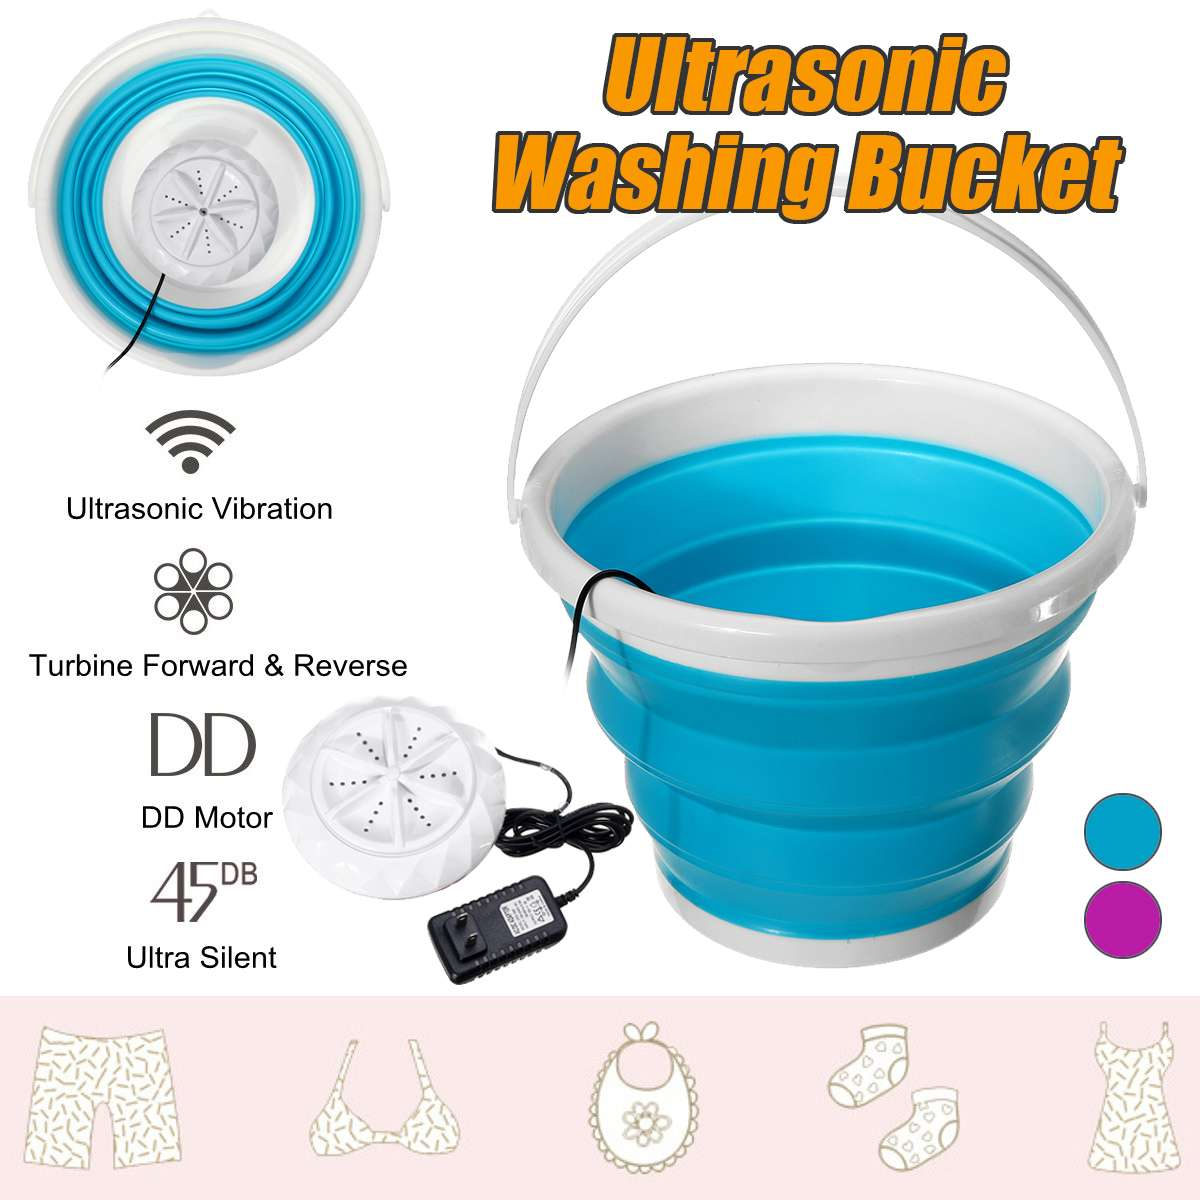 100-240v Mini Ultrasonic Washing Machine Foldable Bucket Type USB Laundry Clothes Washer Cleaner For Home Travel